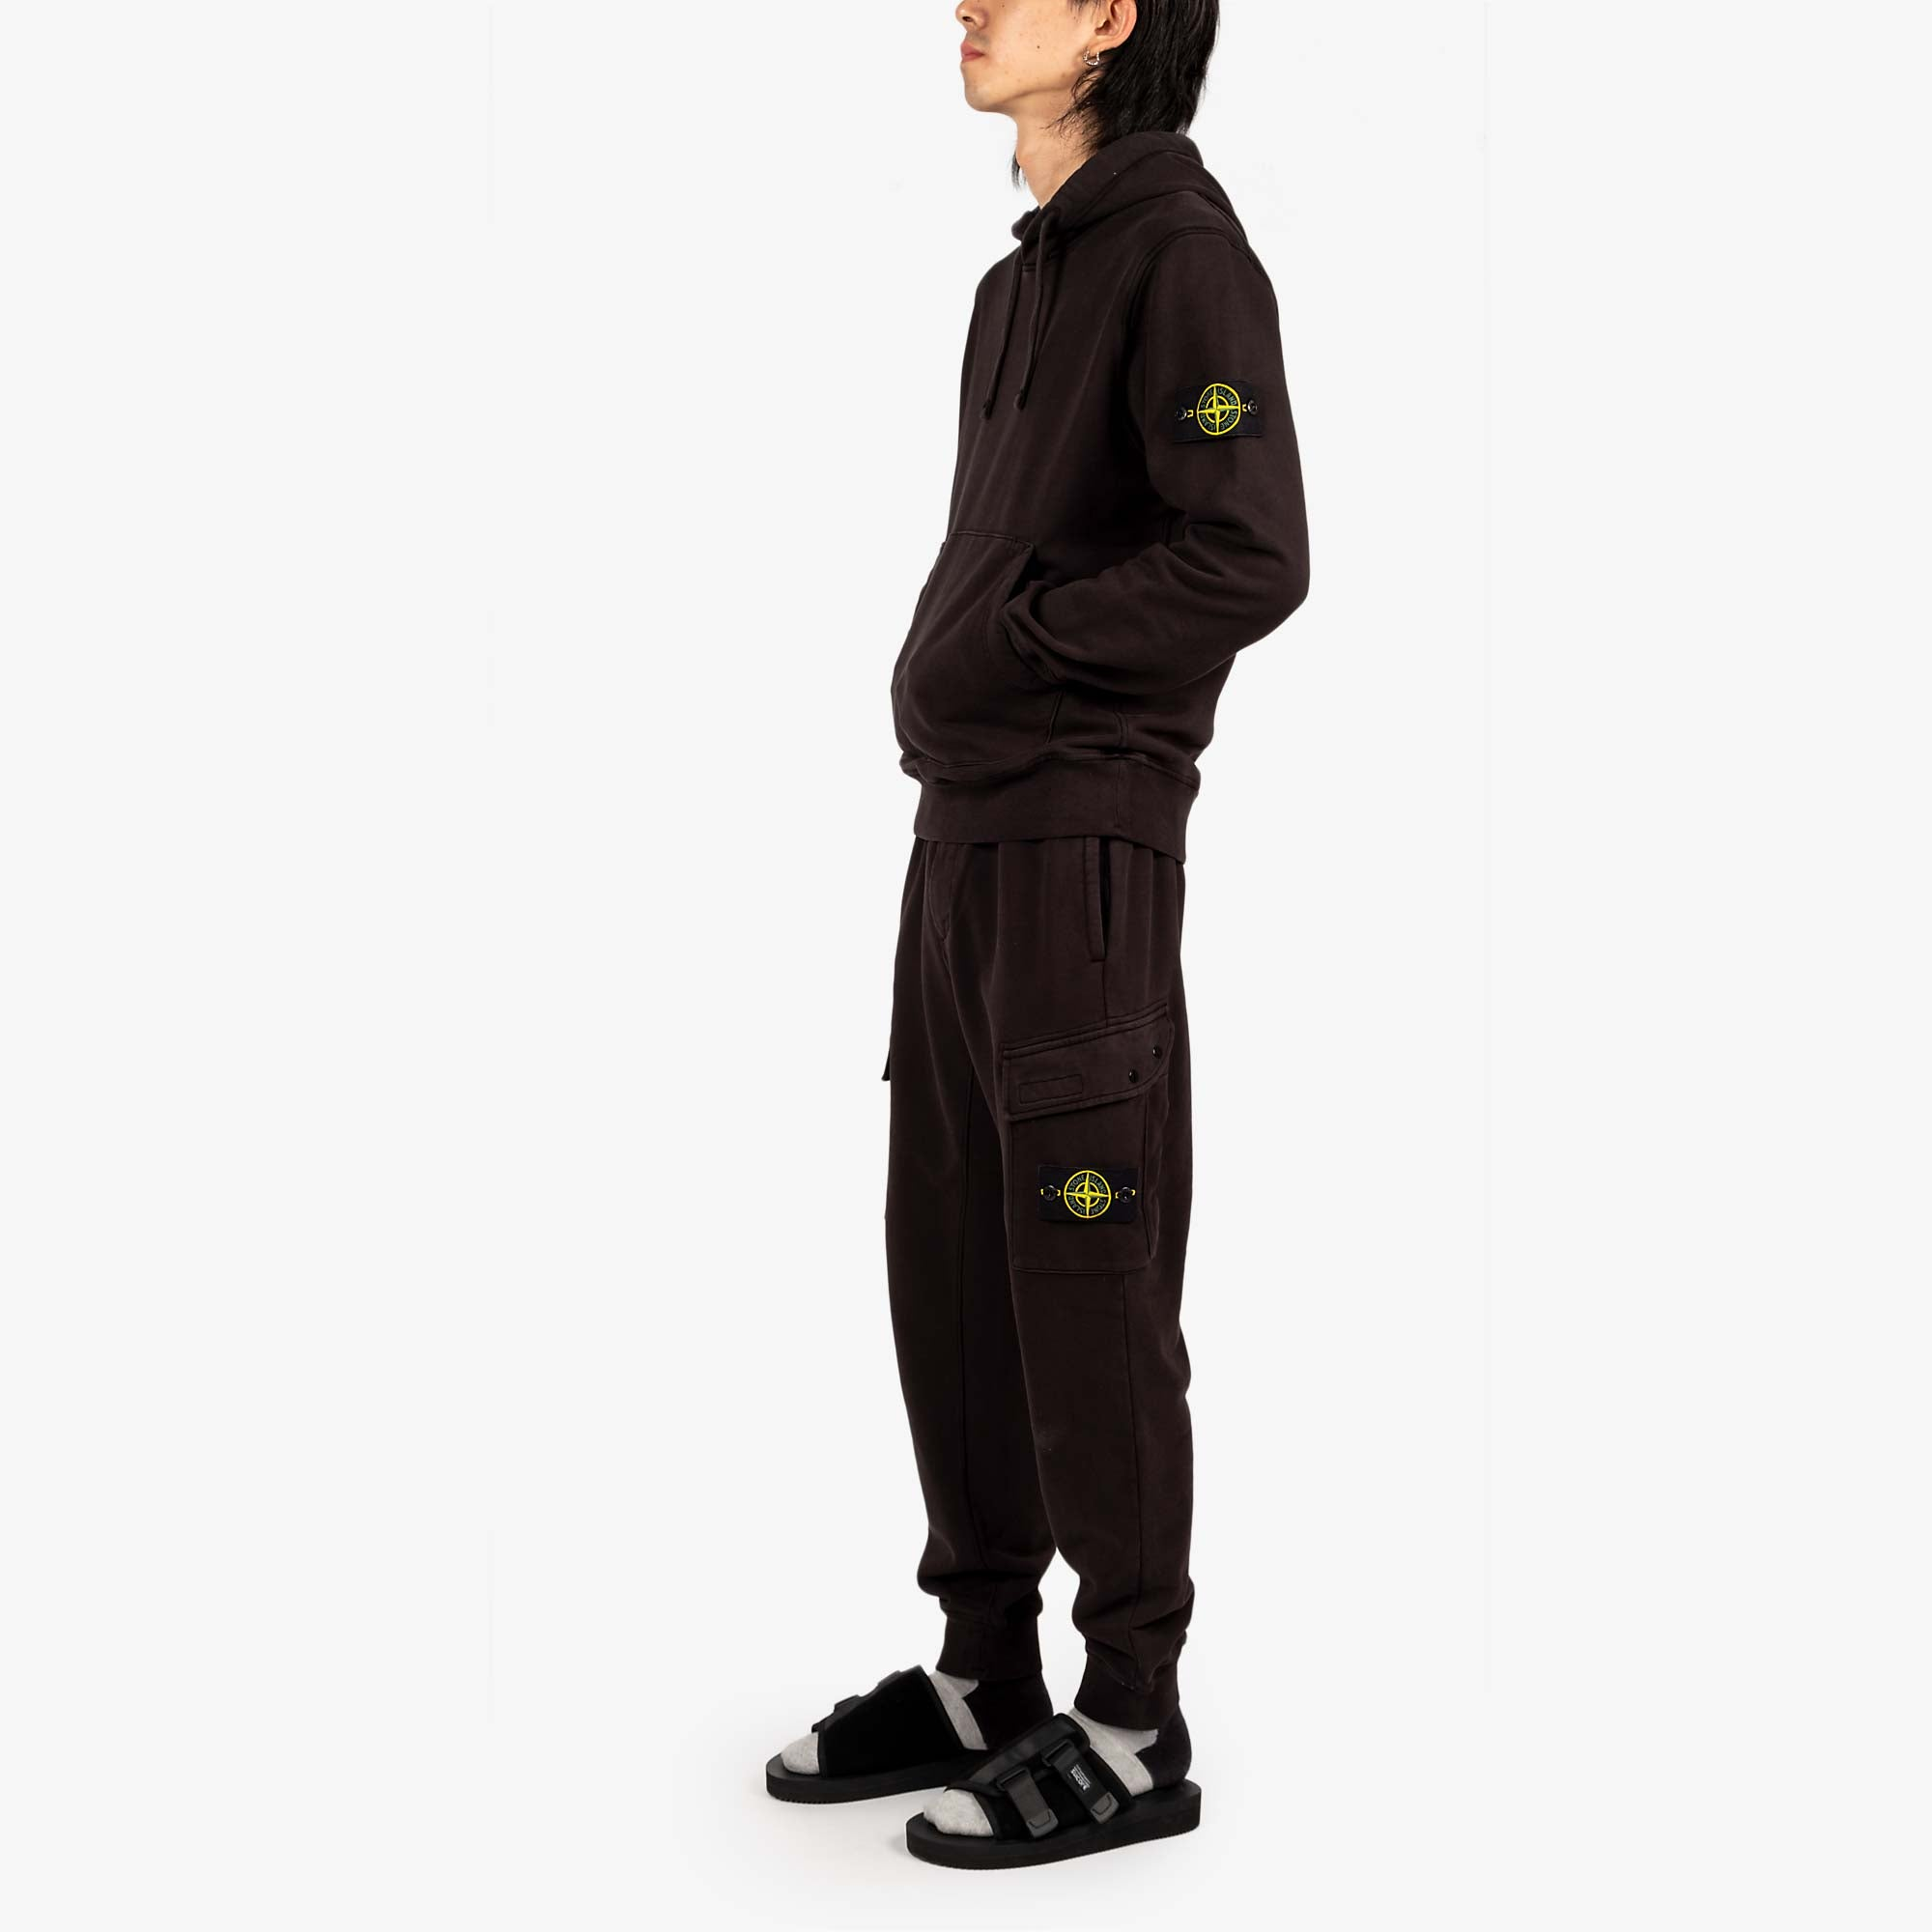 Stone Island Fleece Pants 741565251 - Black 6